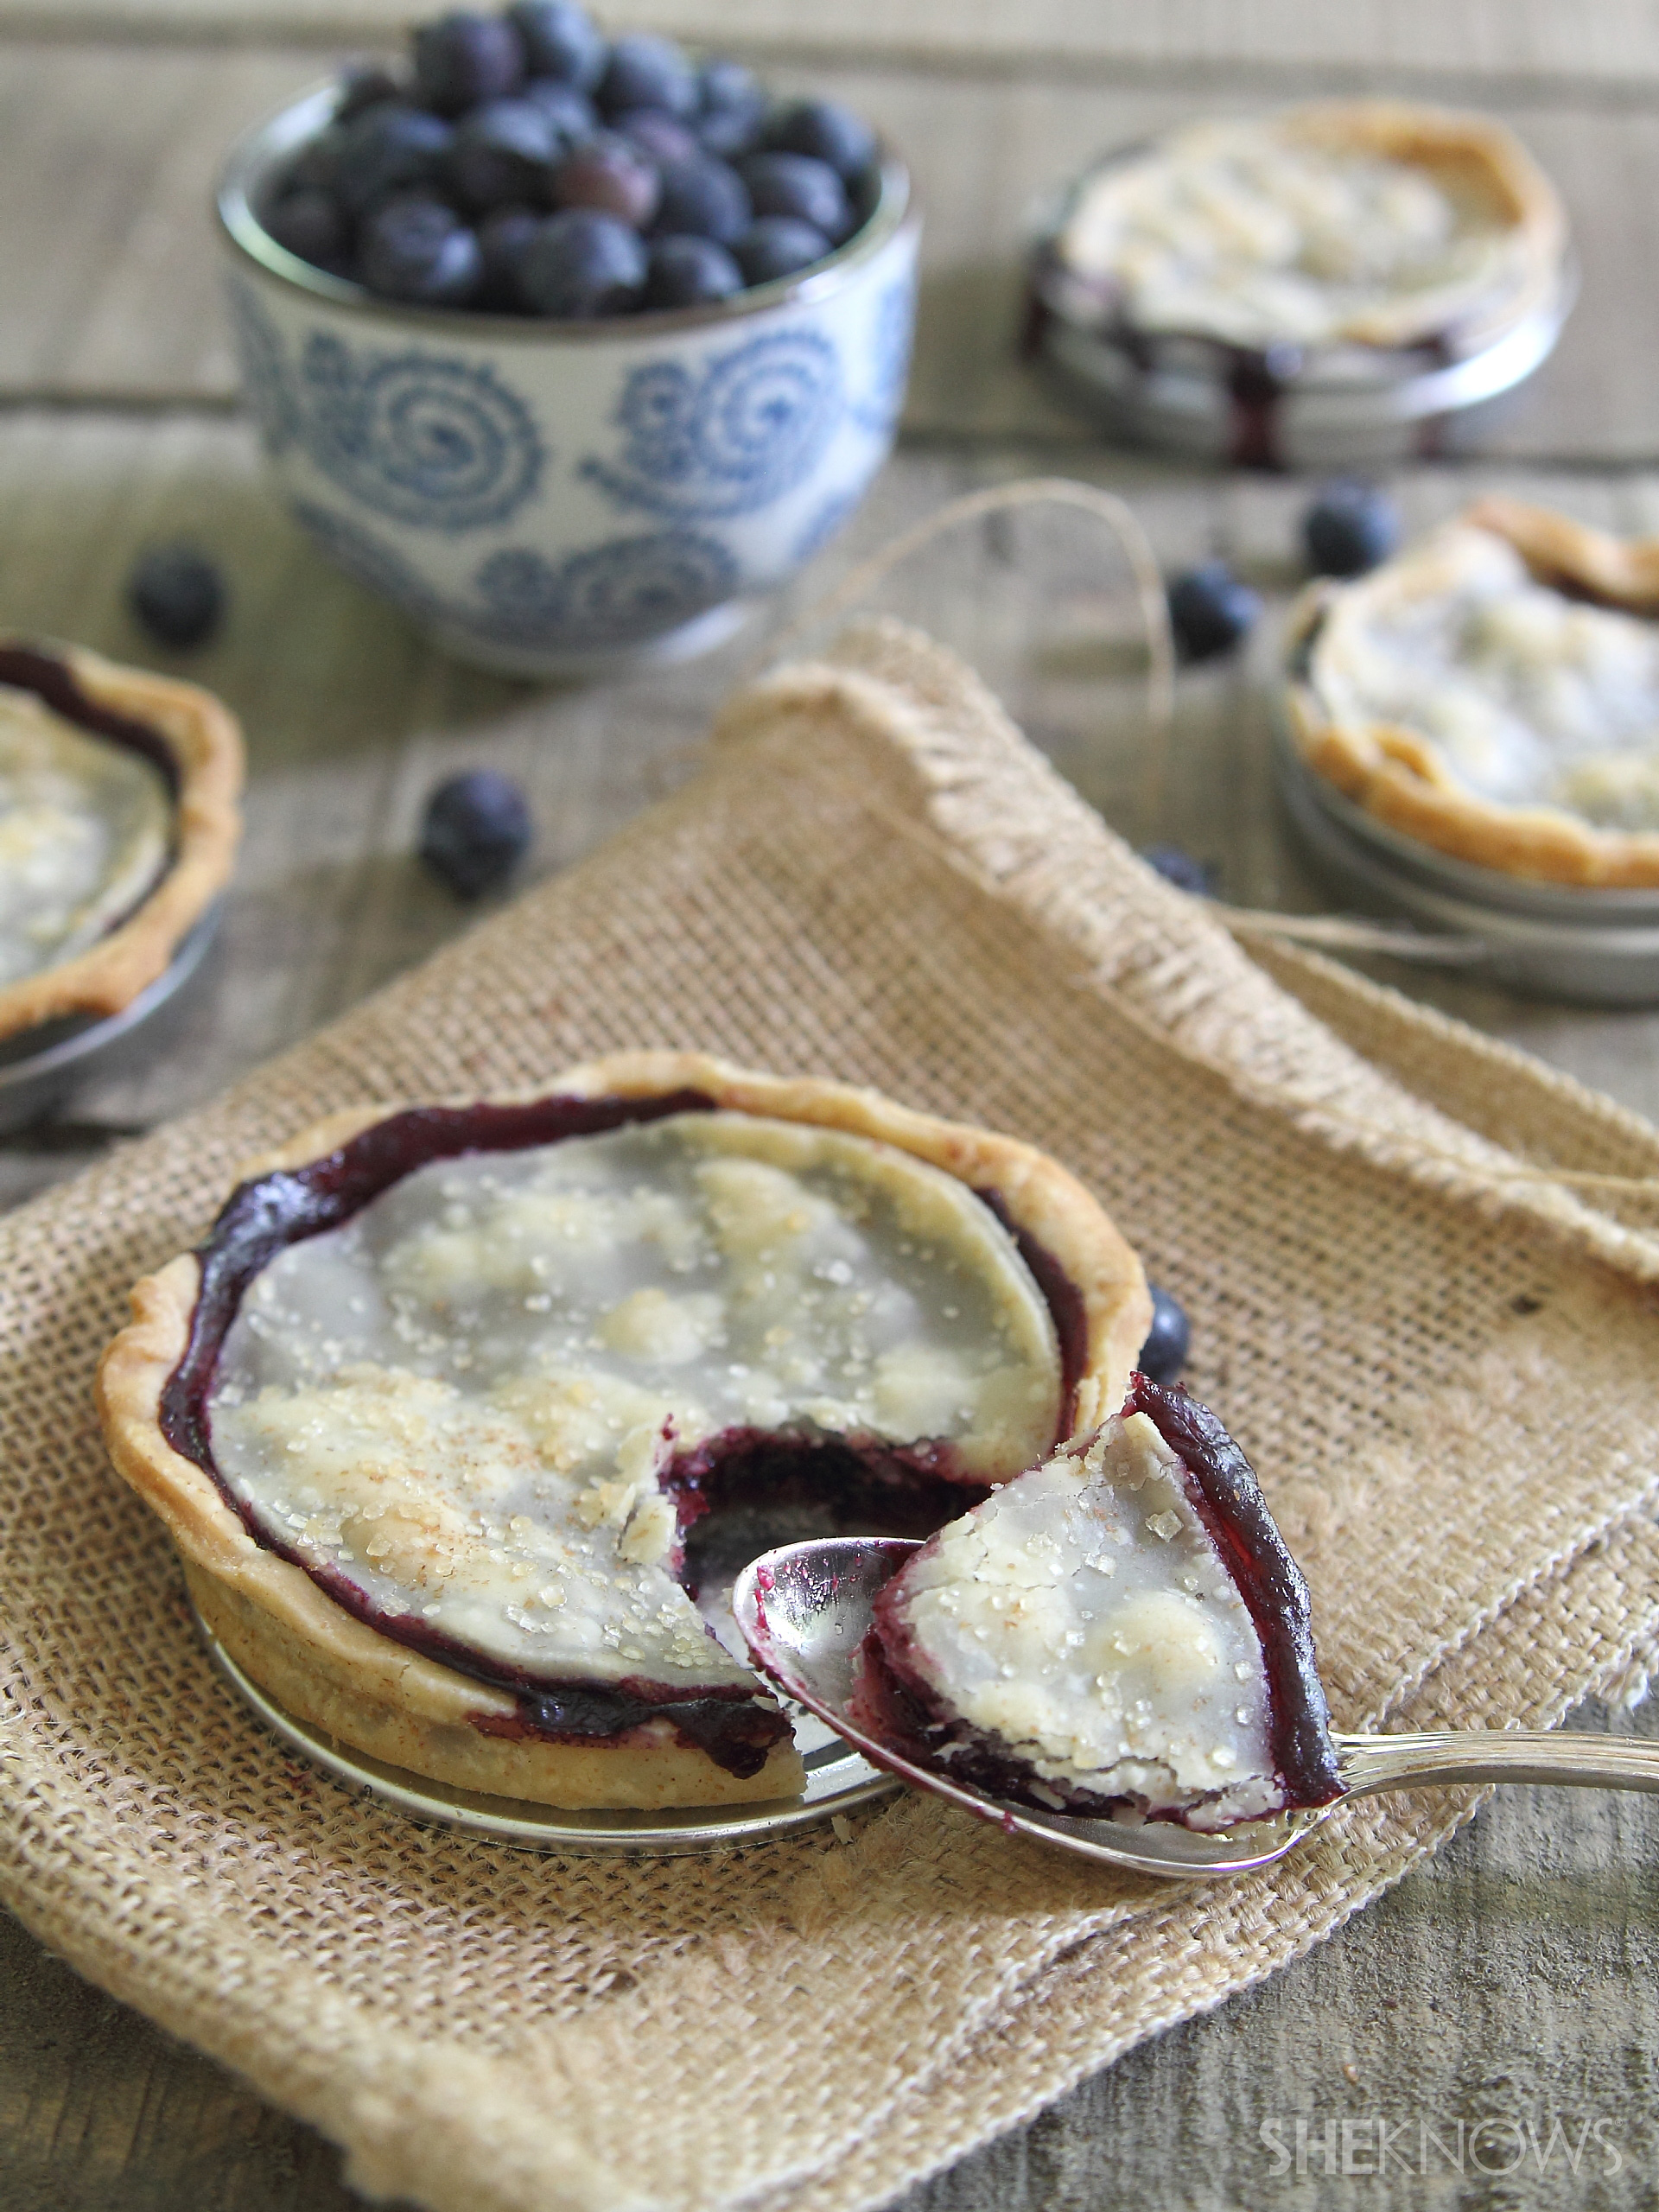 Mason_jar_lid_blueberry_pies_1_wy0yai